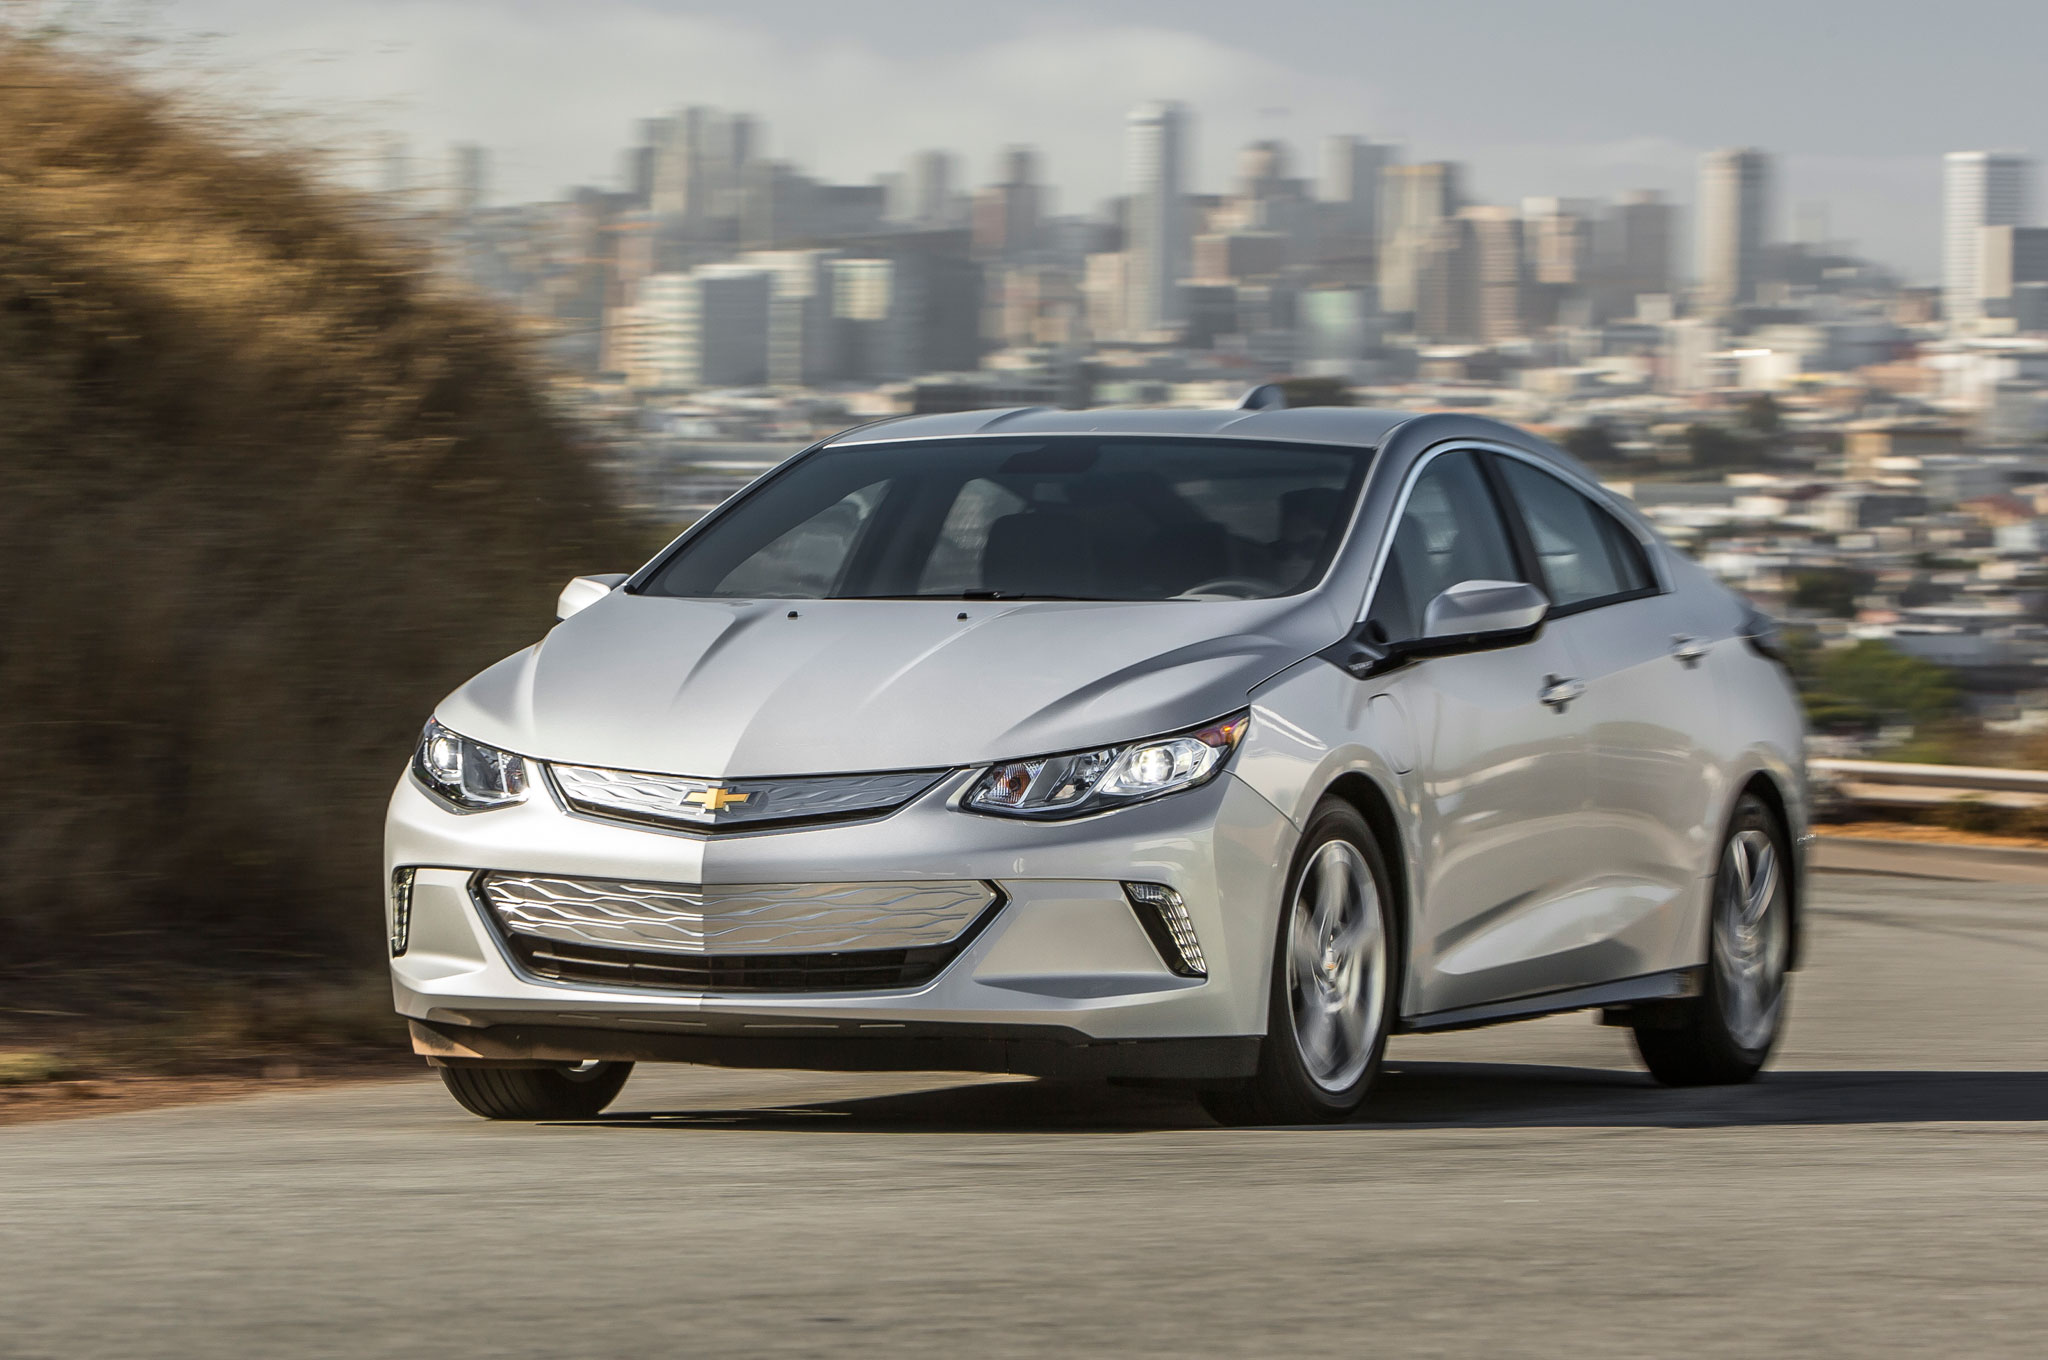 Charging Ahead 2016 Chevrolet Volt Review Chevy Car 1 30